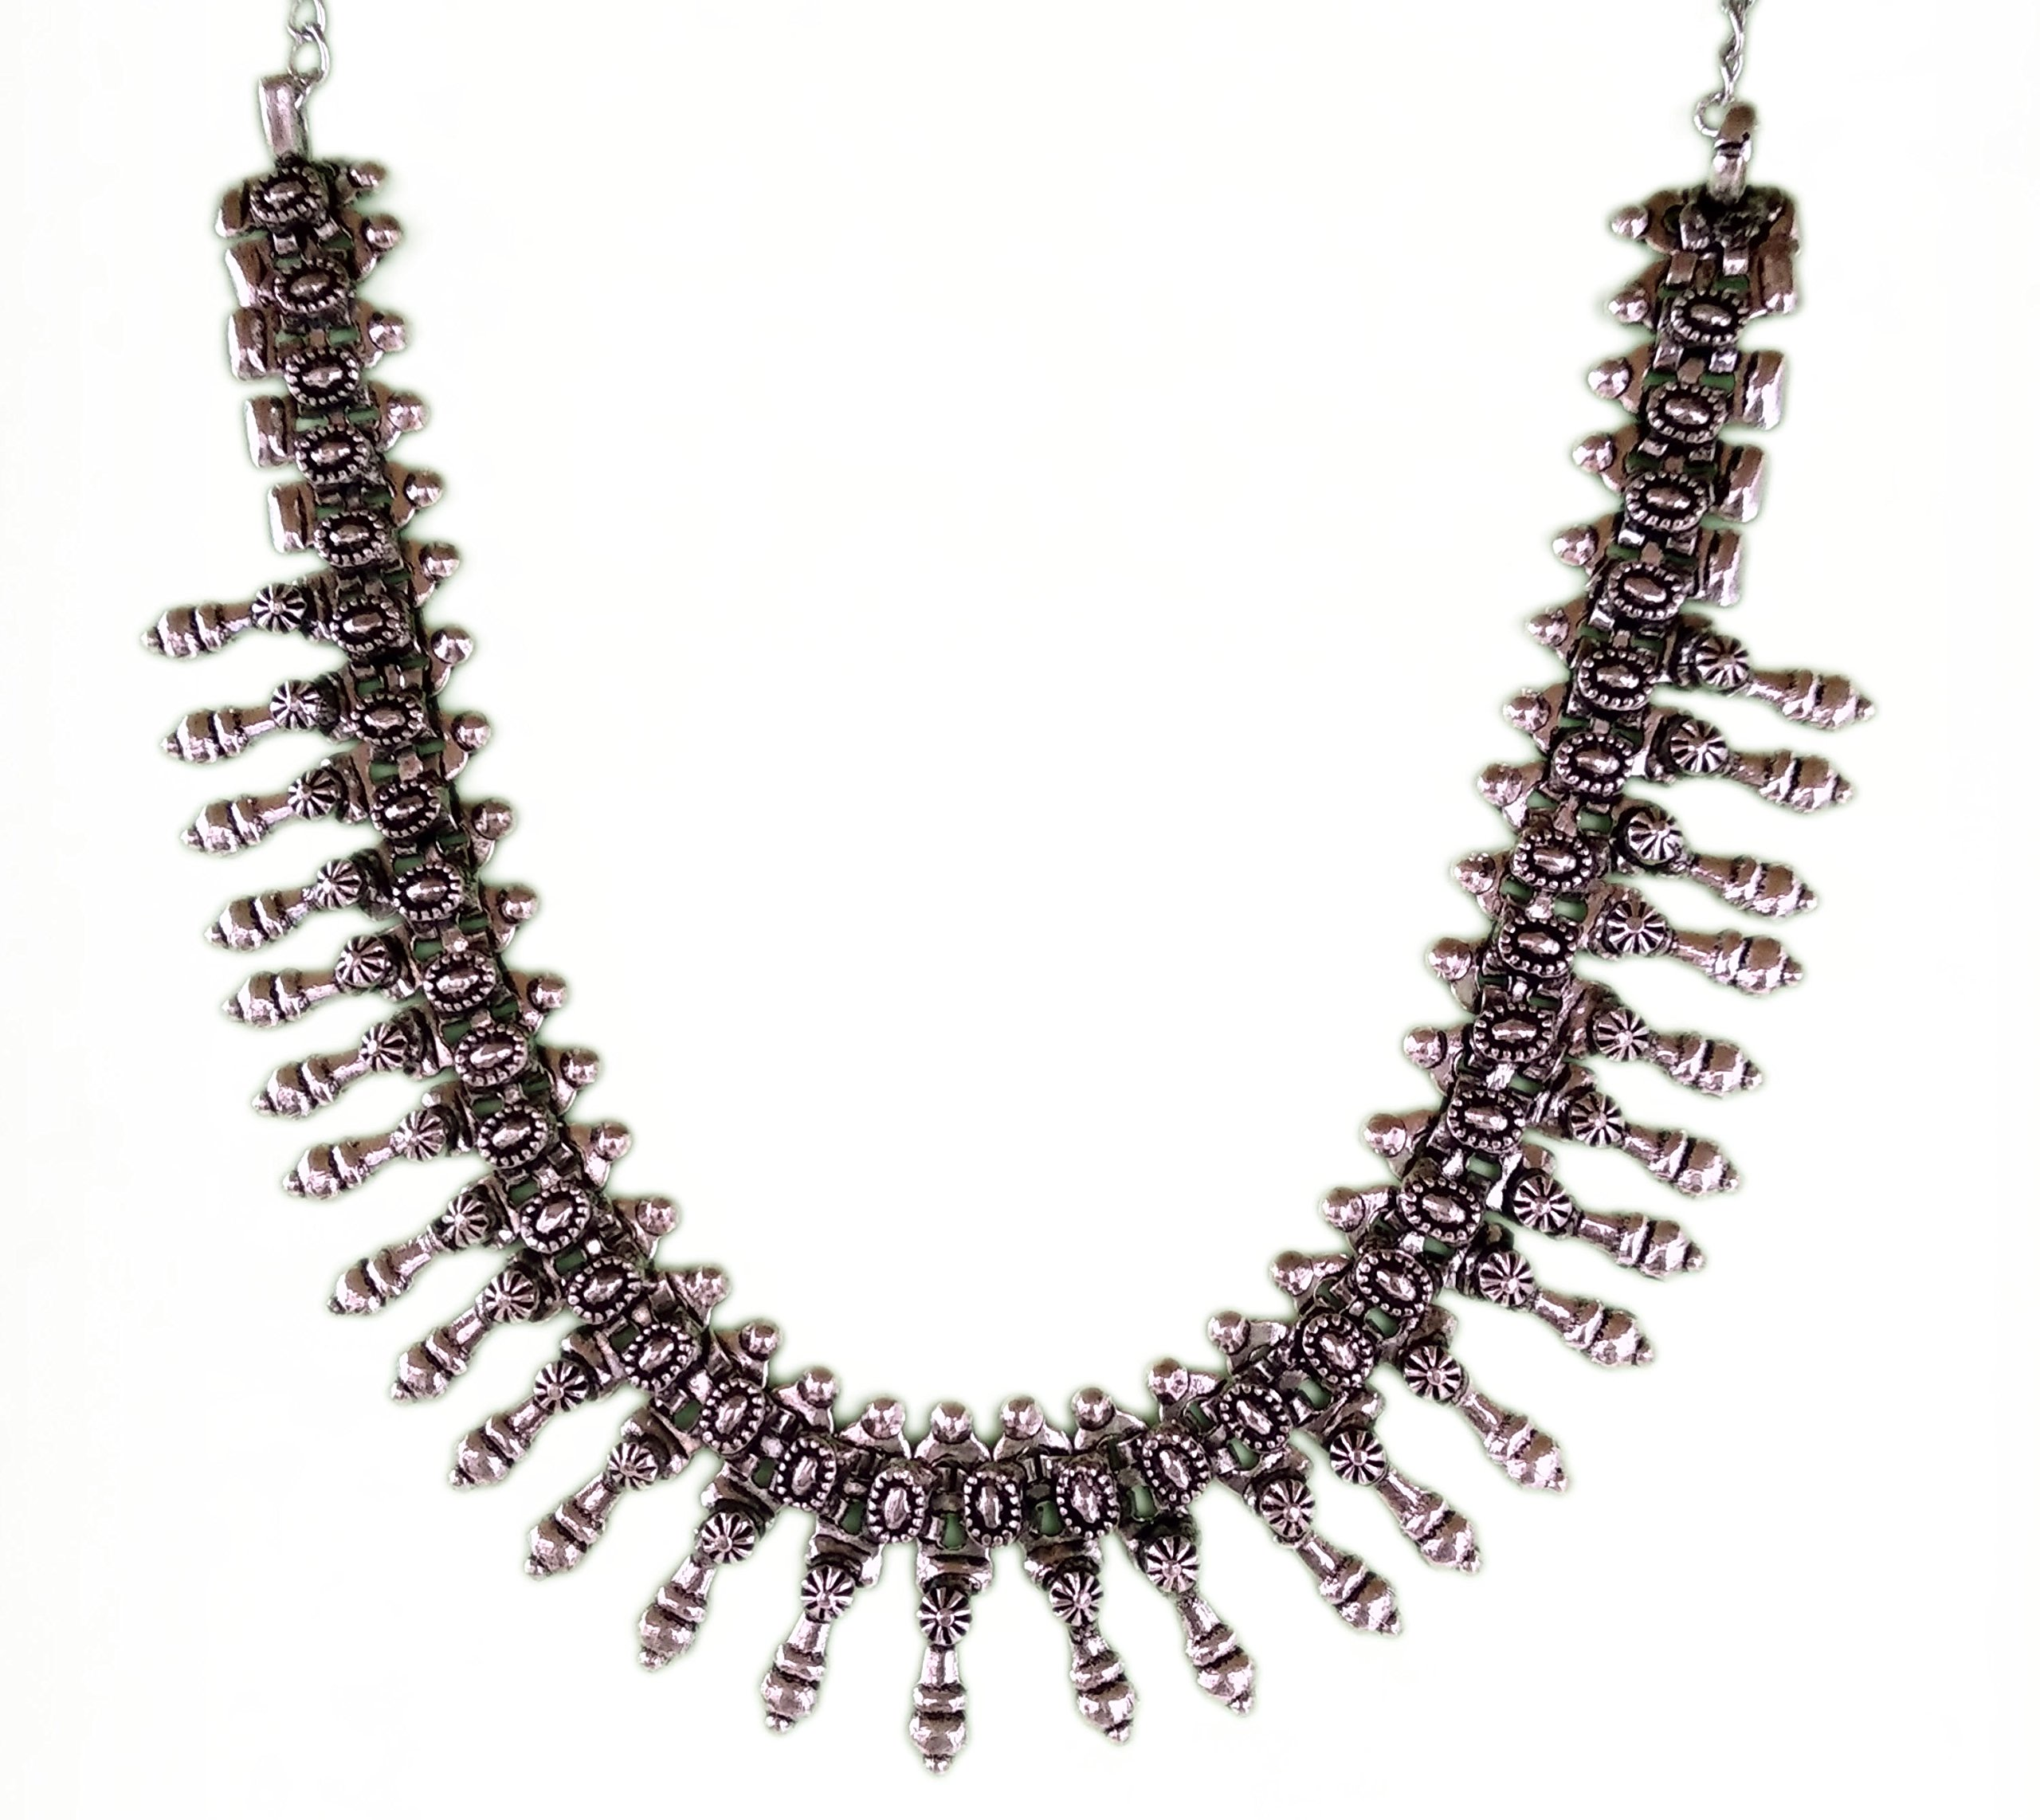 The Trendy Trendz India Bollywood Oxidized Silver Gypsy Style Necklace Jewelry for Women and Girls